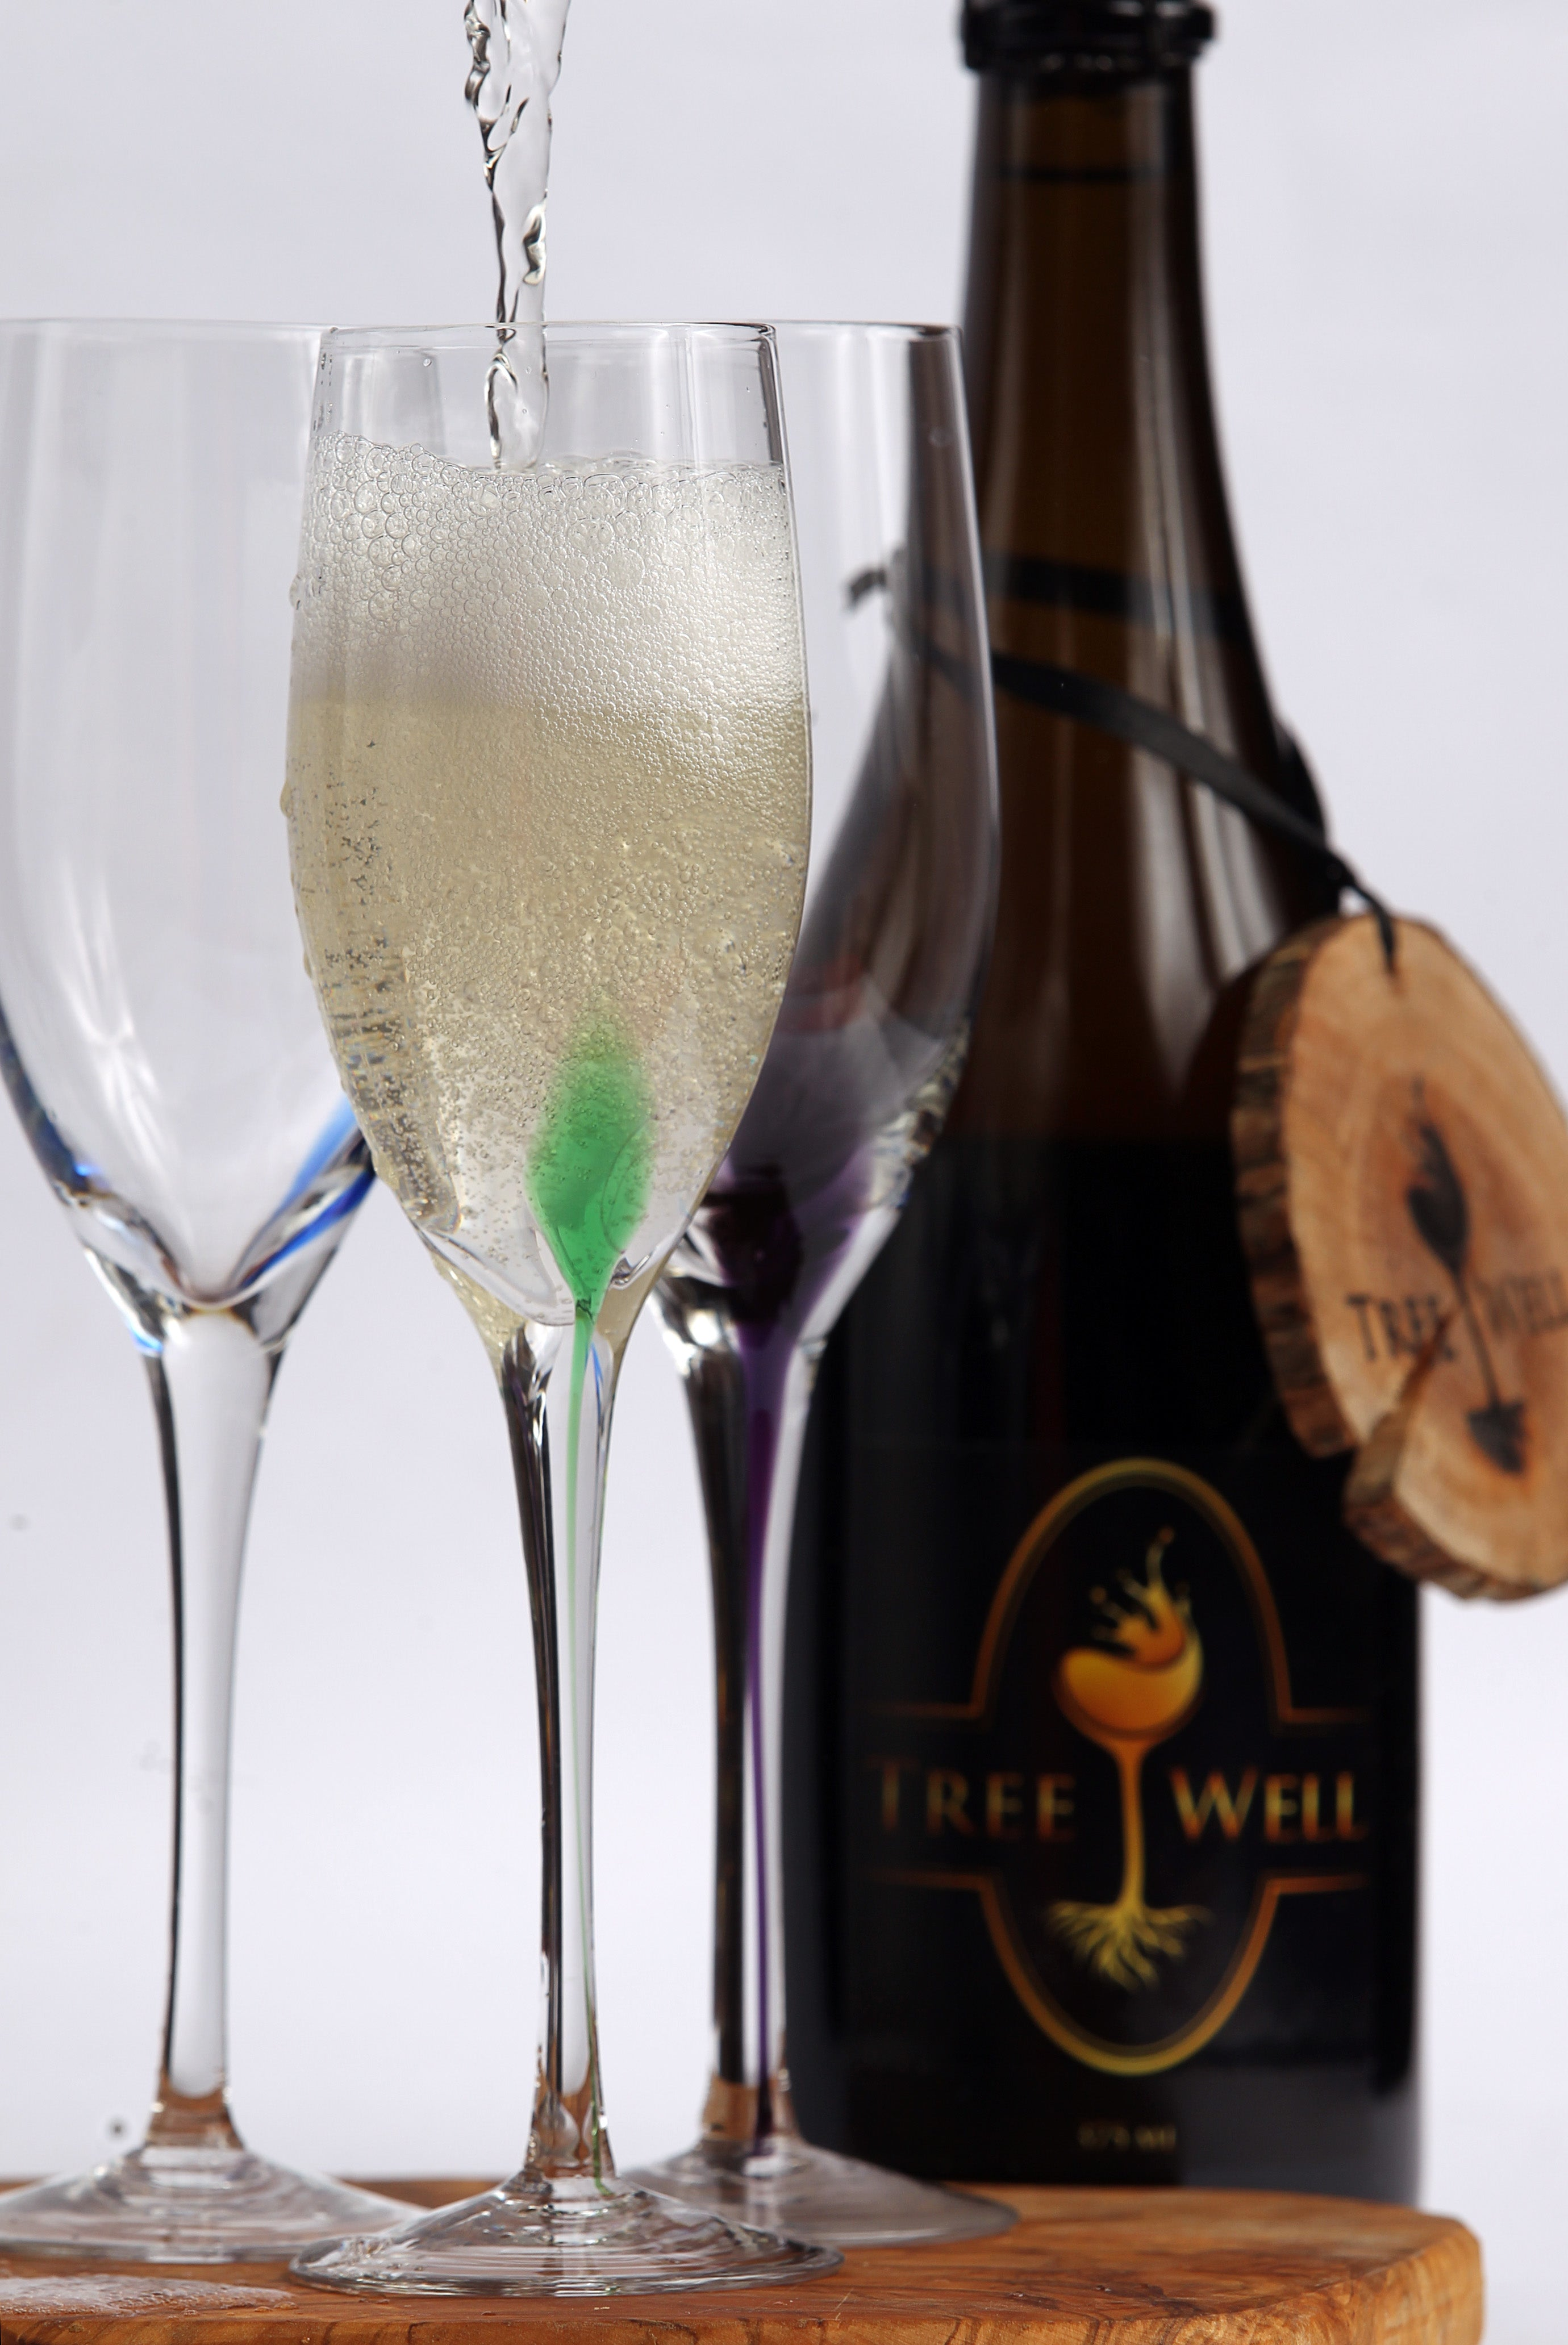 TreeWell Sparkling Maple sap